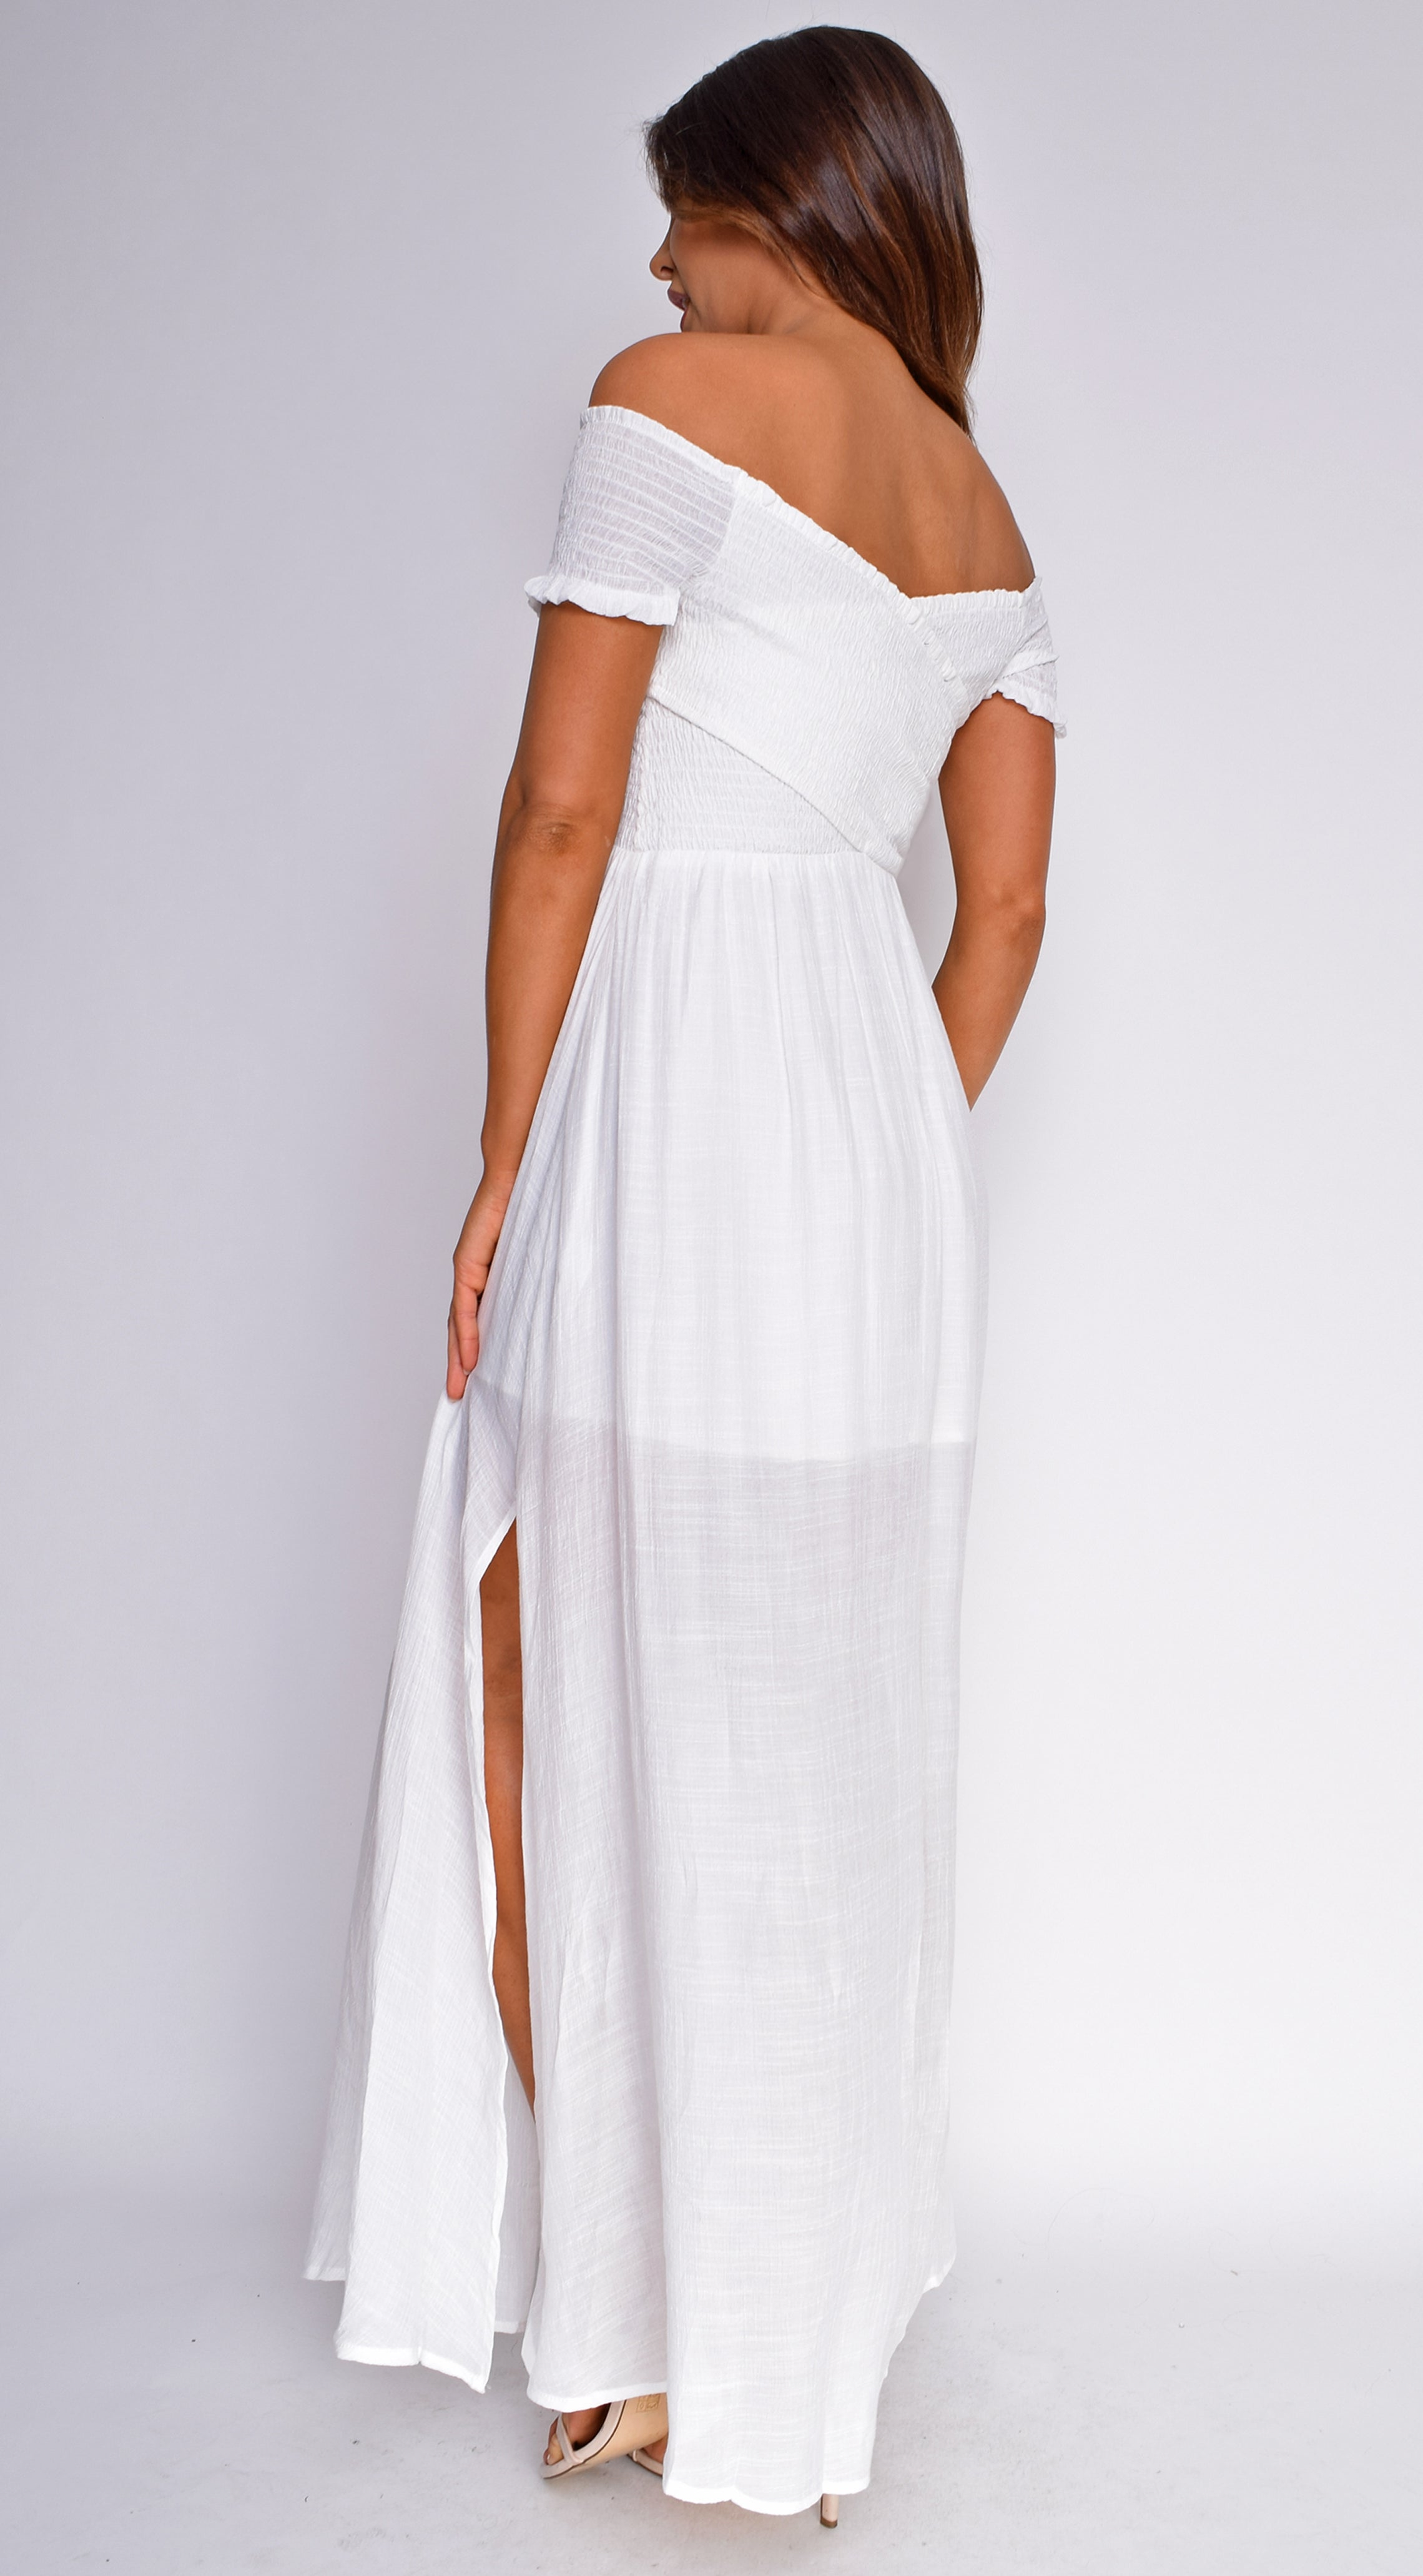 Zarina White Smocked Cross Strap Maxi Dress